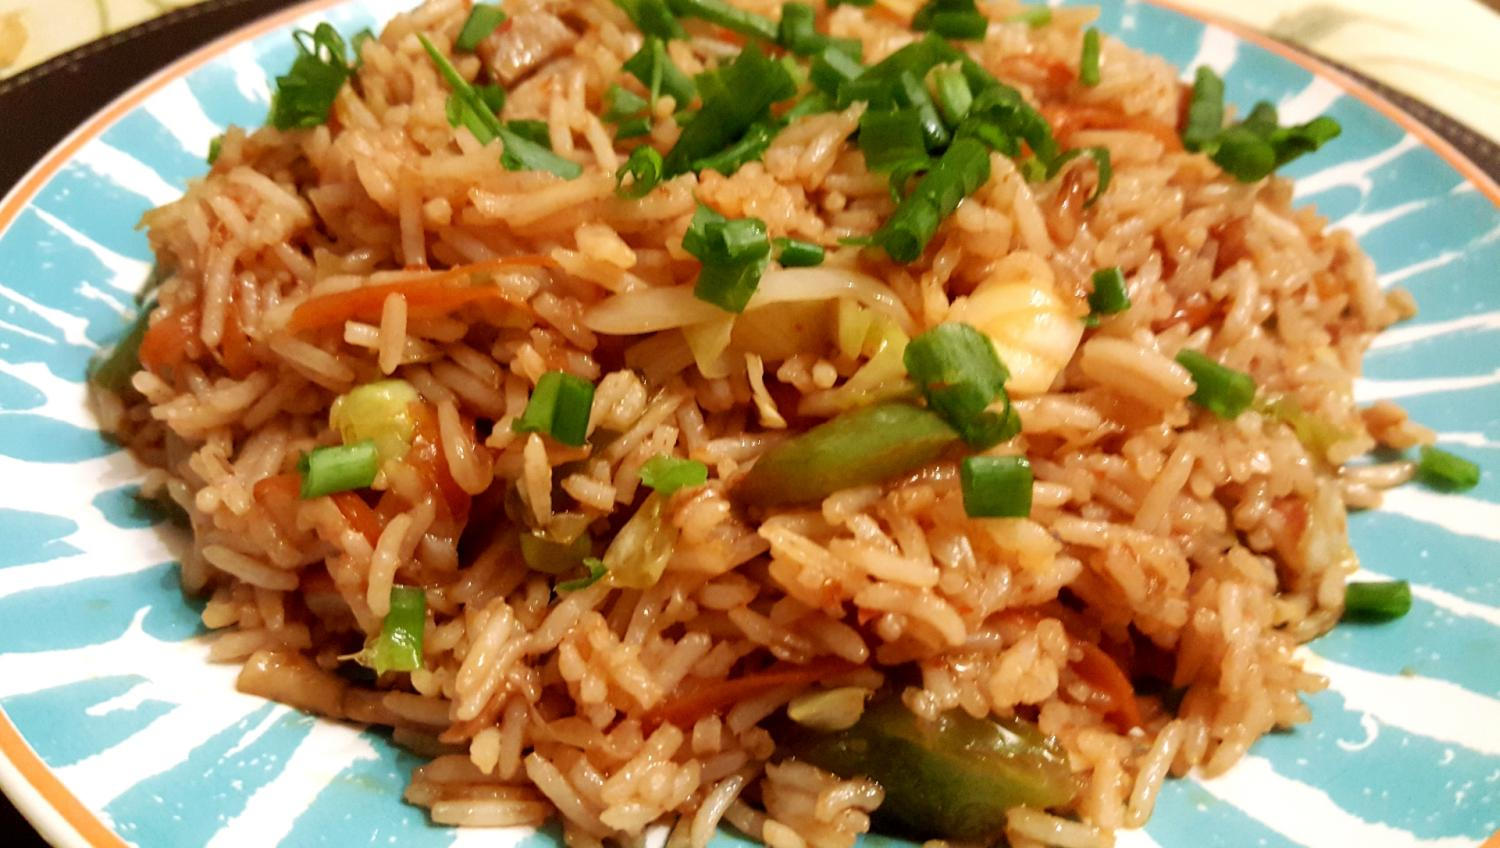 chilli-garlic-fried-rice2